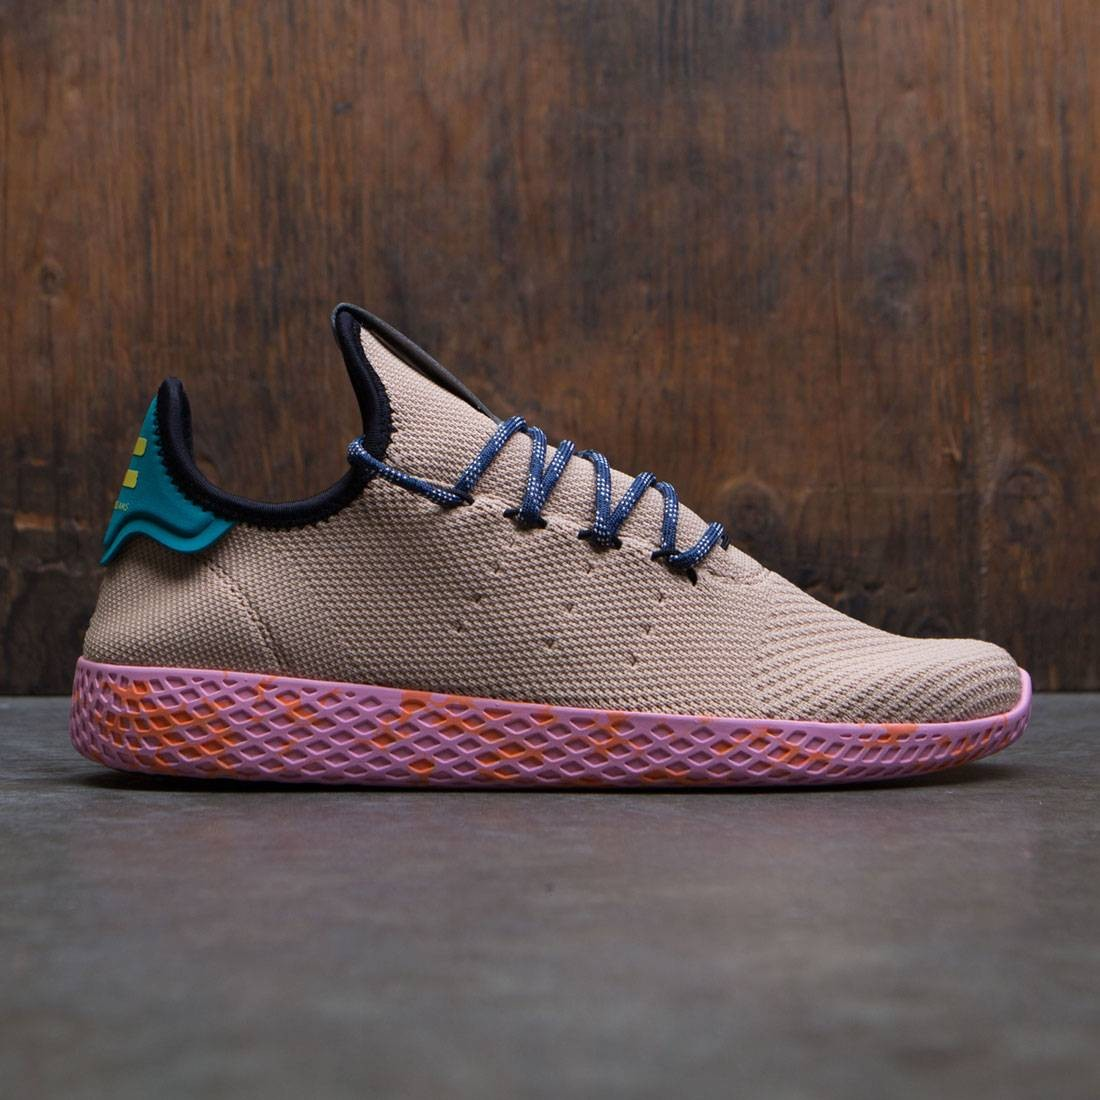 Adidas x Pharrell Williams Men Tennis HU (tan / teal / pink marble)